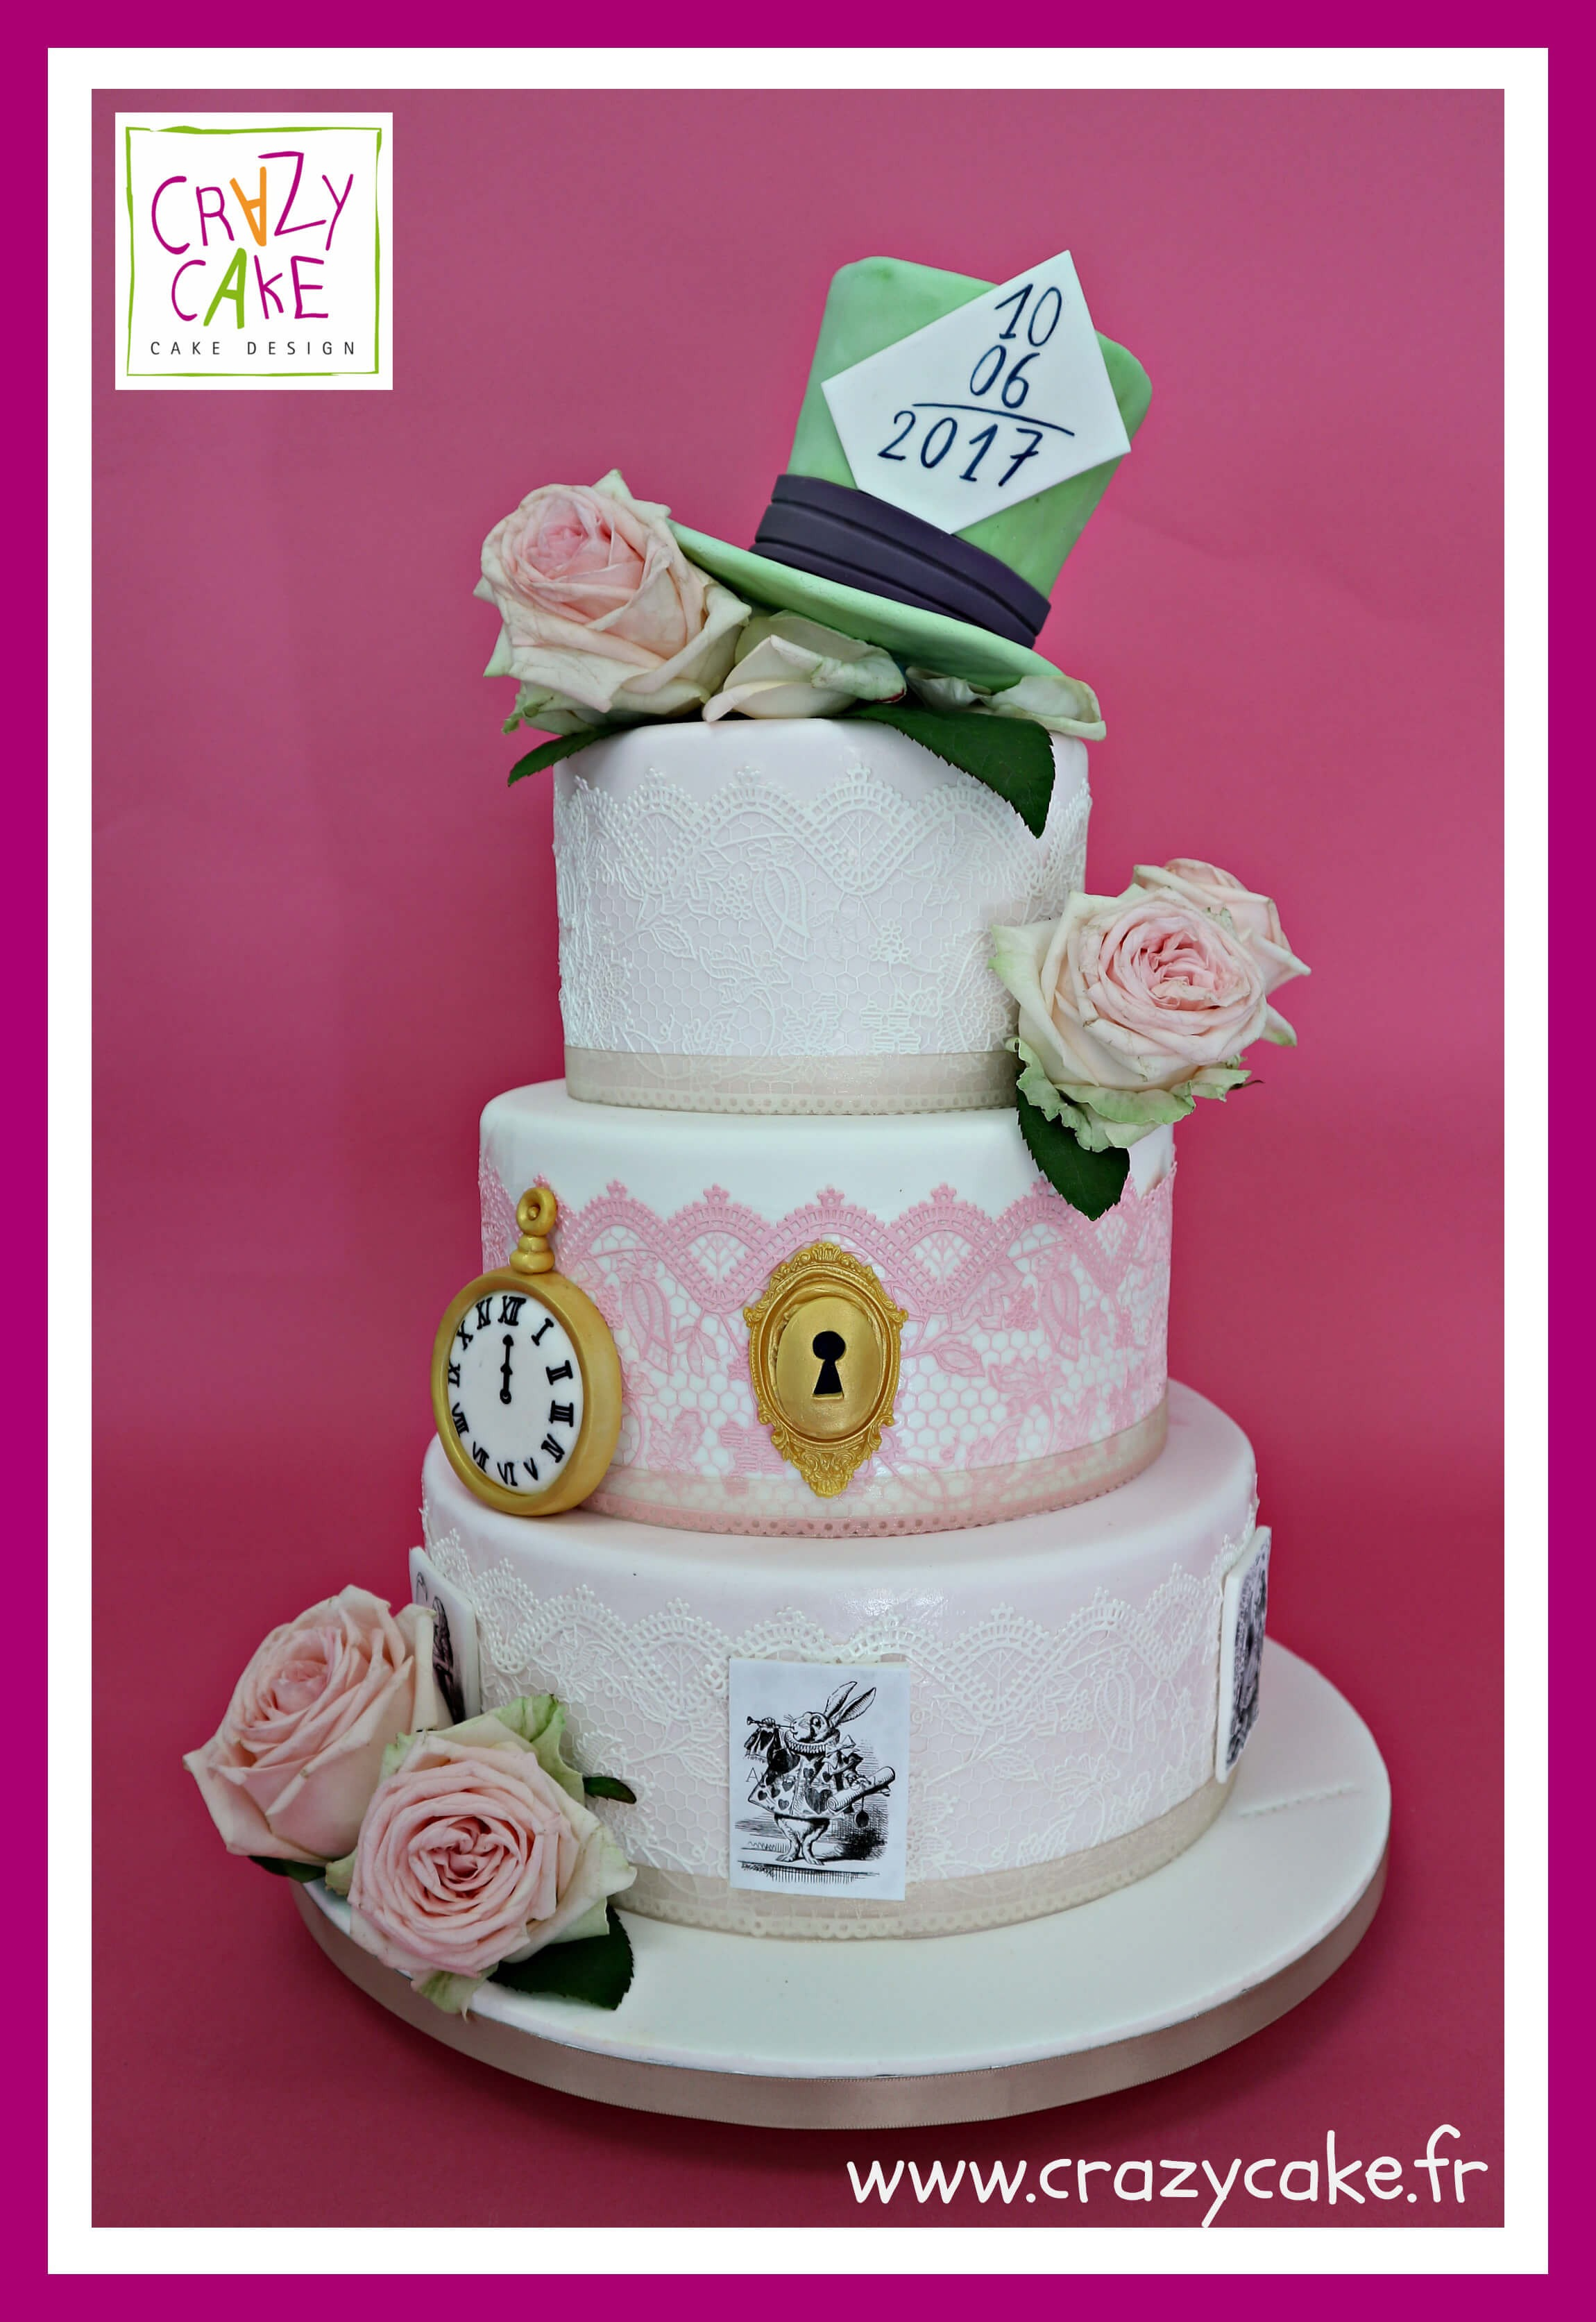 who pays for the wedding cake wedding cakes 224 th 232 me 27445